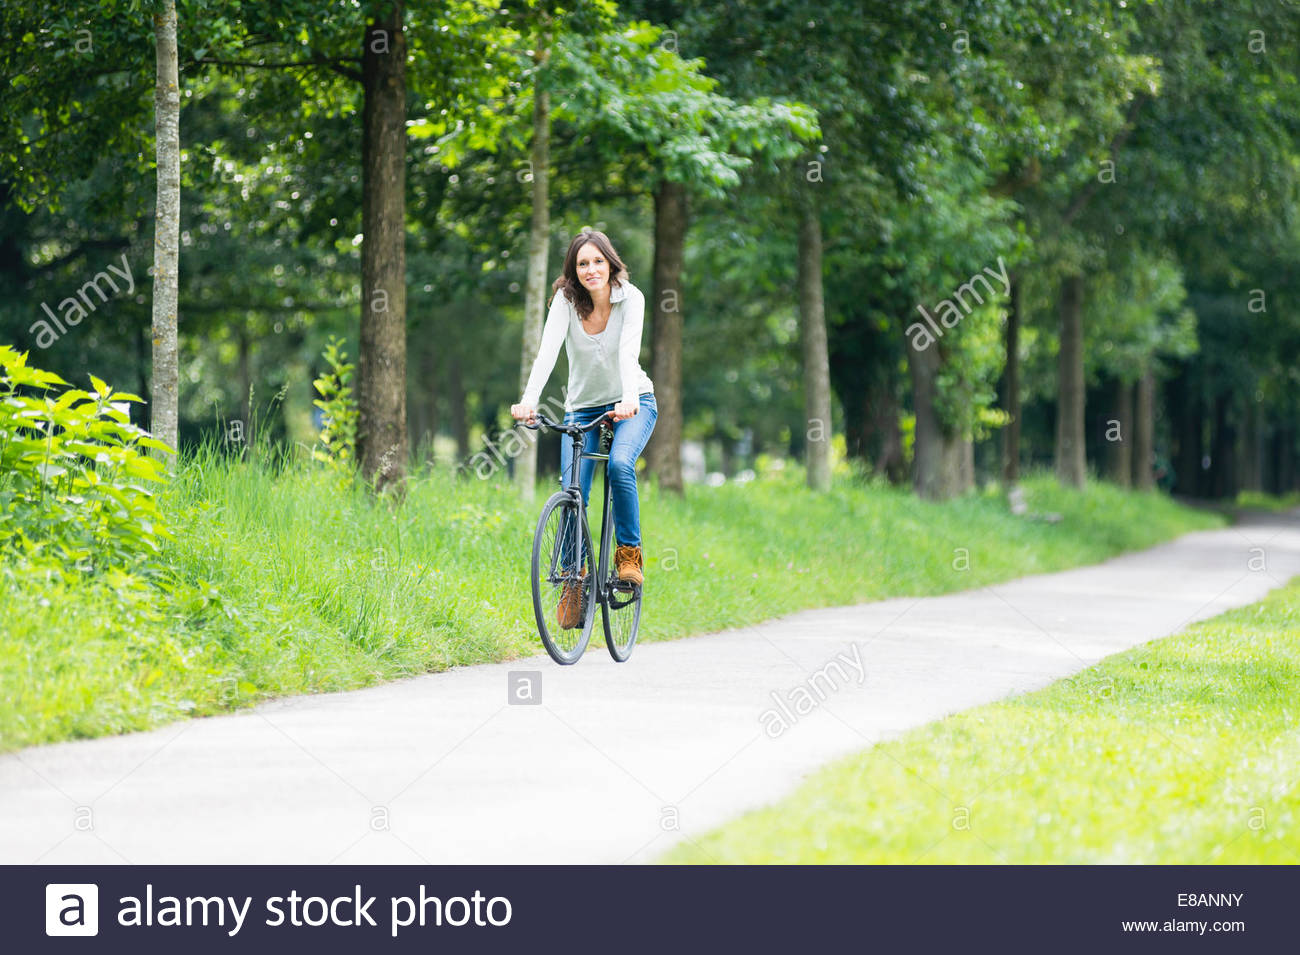 Mid adult woman cycling on park pathway - Stock Image